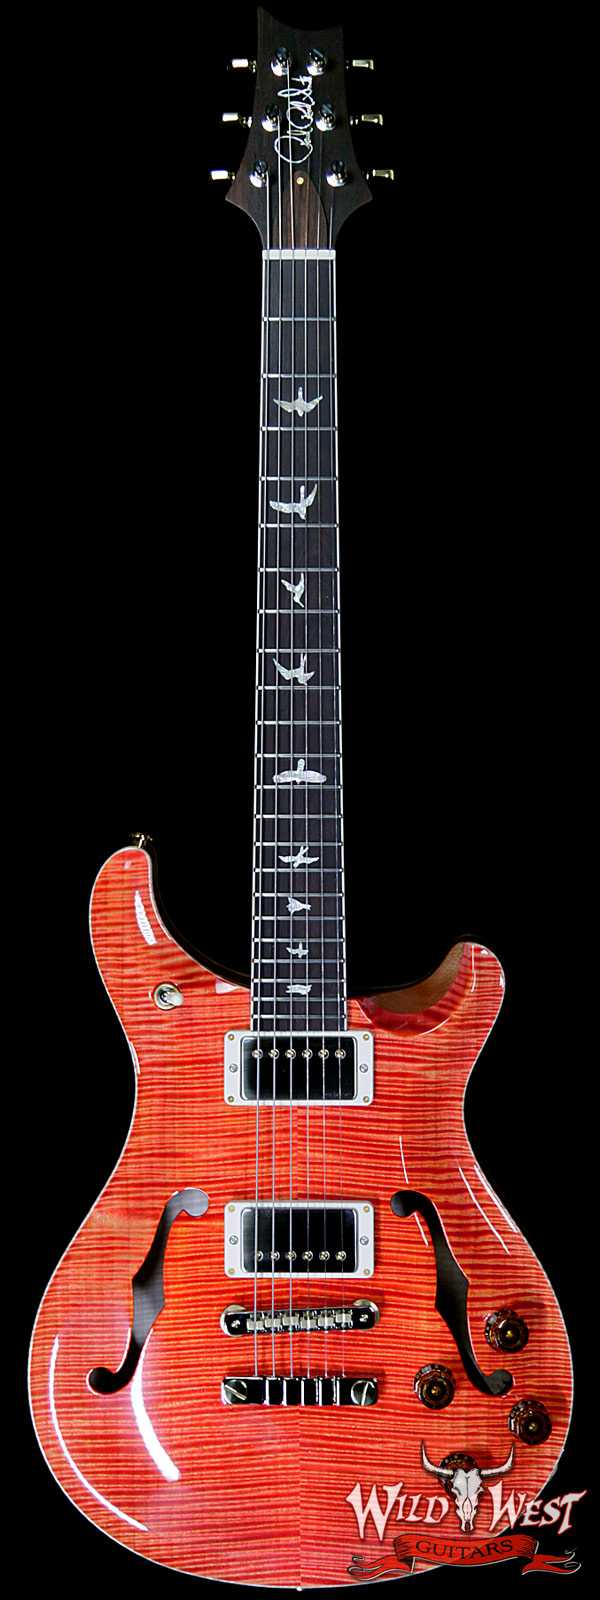 PRS Wild West Guitars 20th Anniversary Limited Run # 14 of 40 Wood Library Artist Package McCarty 594 Hollowbody II Salmon(Private Stock Color)